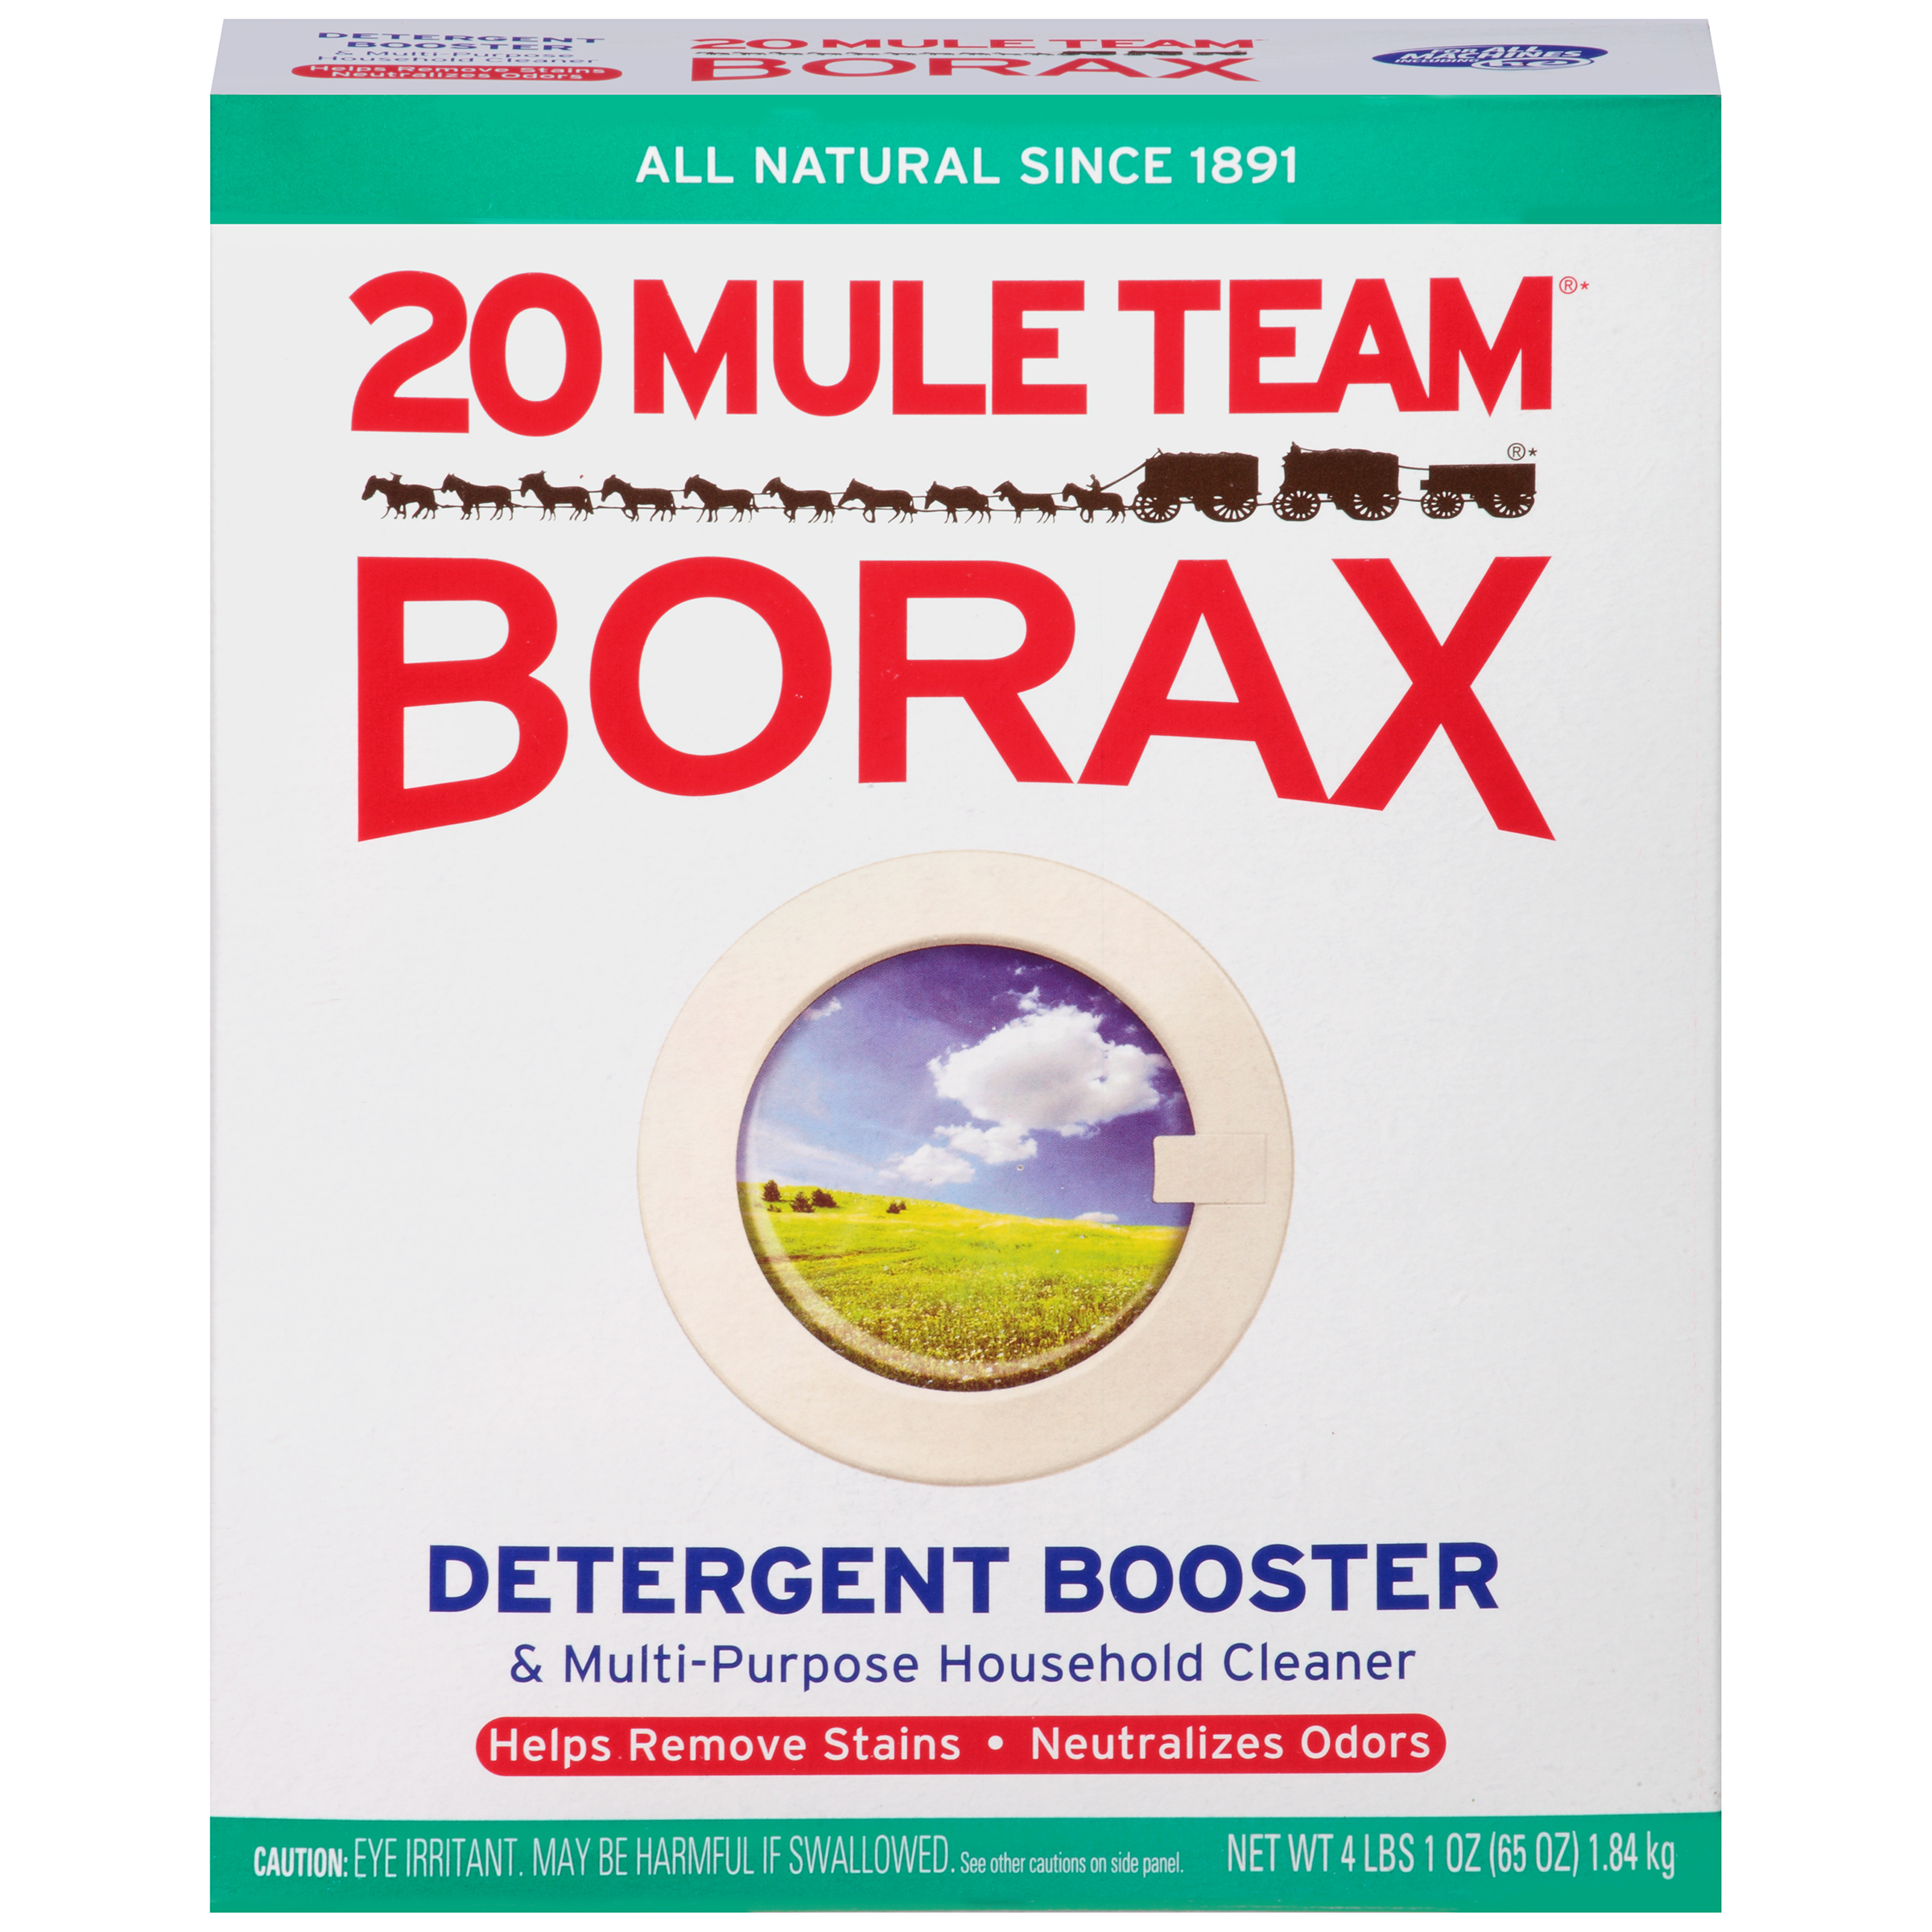 20 Mule Team Borax Detergent Booster & Multi-Purpose Household Cleaner, 65 Oz Box